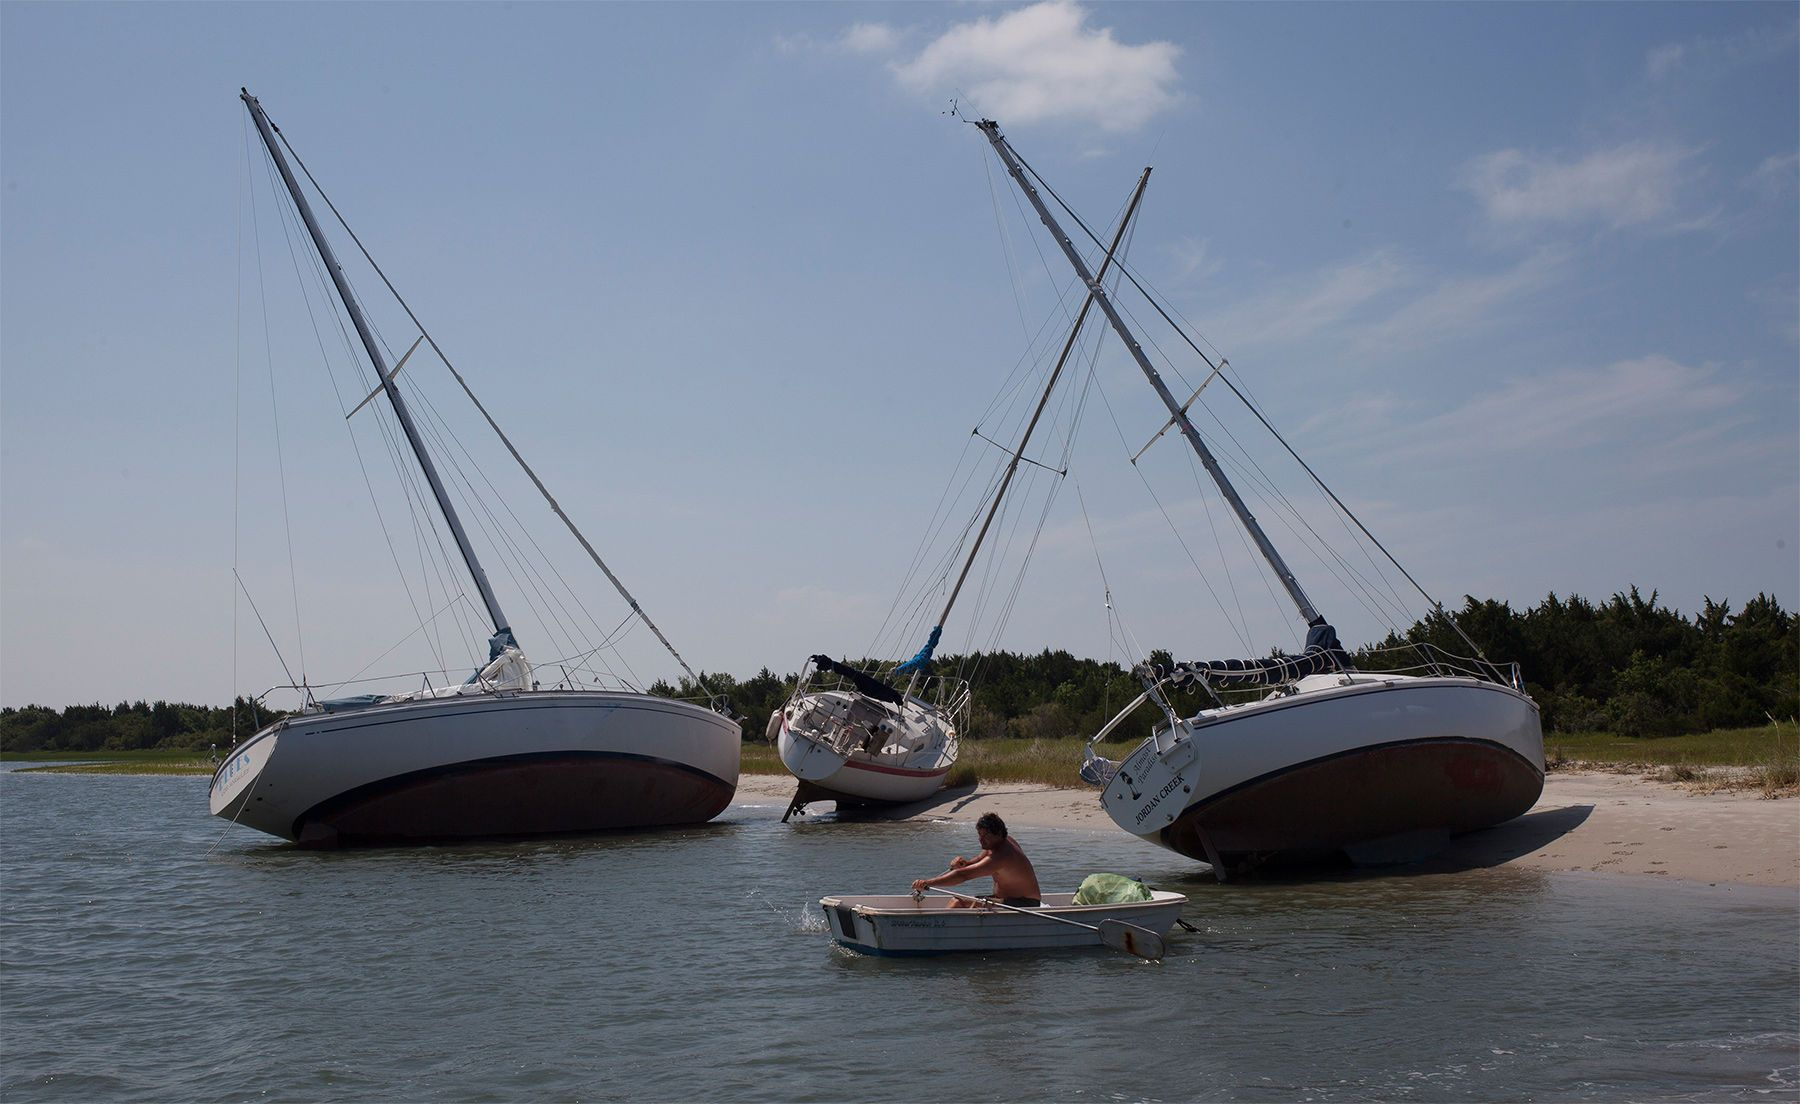 Jim Bonavito of Beaufort, North Carolina, rows his dingy past sailboats that broke free of their moorings during the winds and waves from Hurricane Arthur in Beaufort, North Carolina, Friday, July 04, 2014. Damage was scattered and light along the North Carolina coast near where the eye of Hurricane Arthur came ashore on Thursday evening.   (AP Photo/Randall Hill)